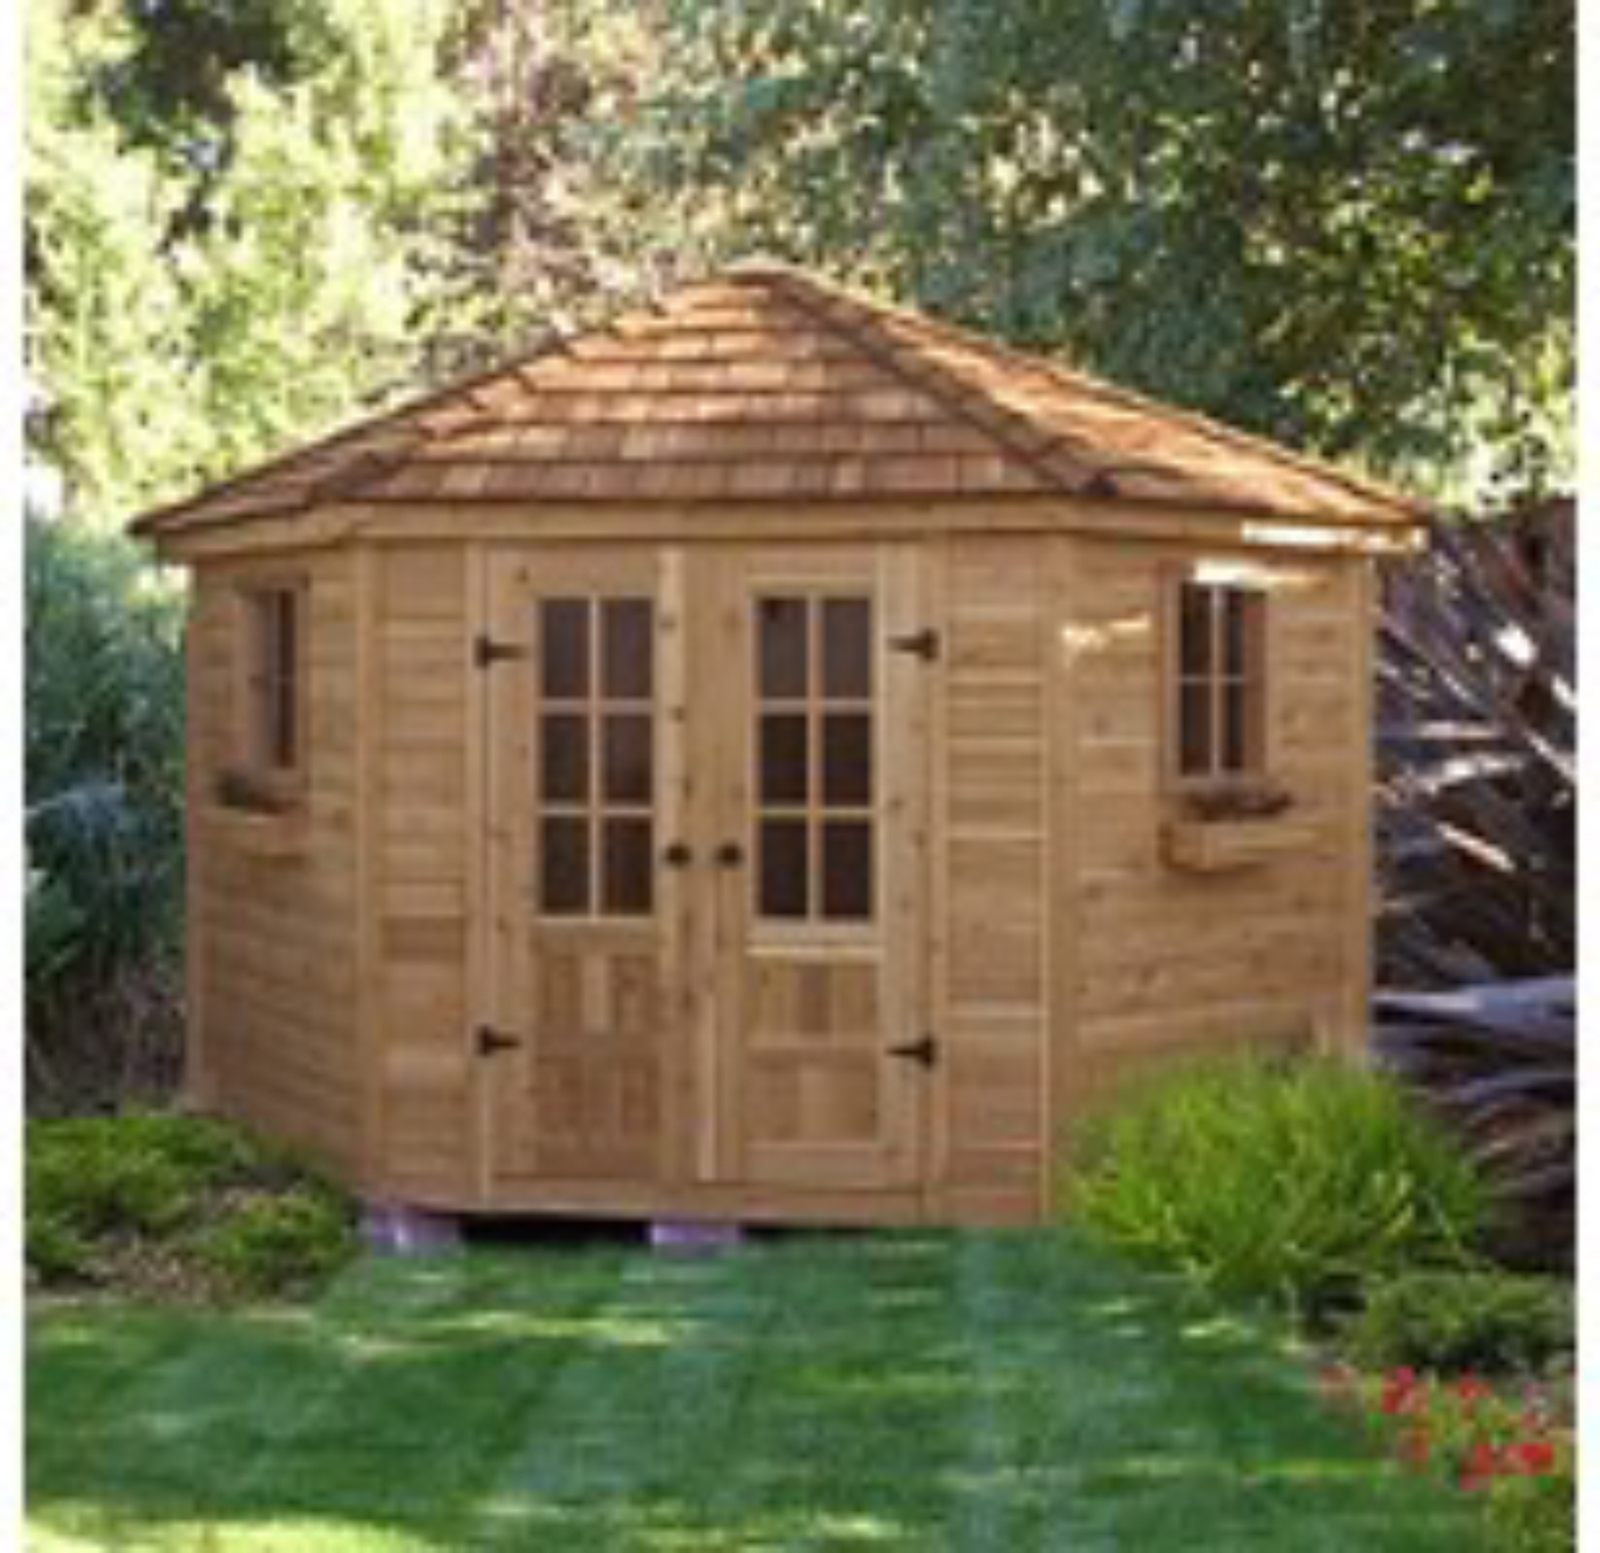 Penthouse w/ Floor - 9' x 9',Outdoor Storage Shed,Wood Shed.Tool Shed, New